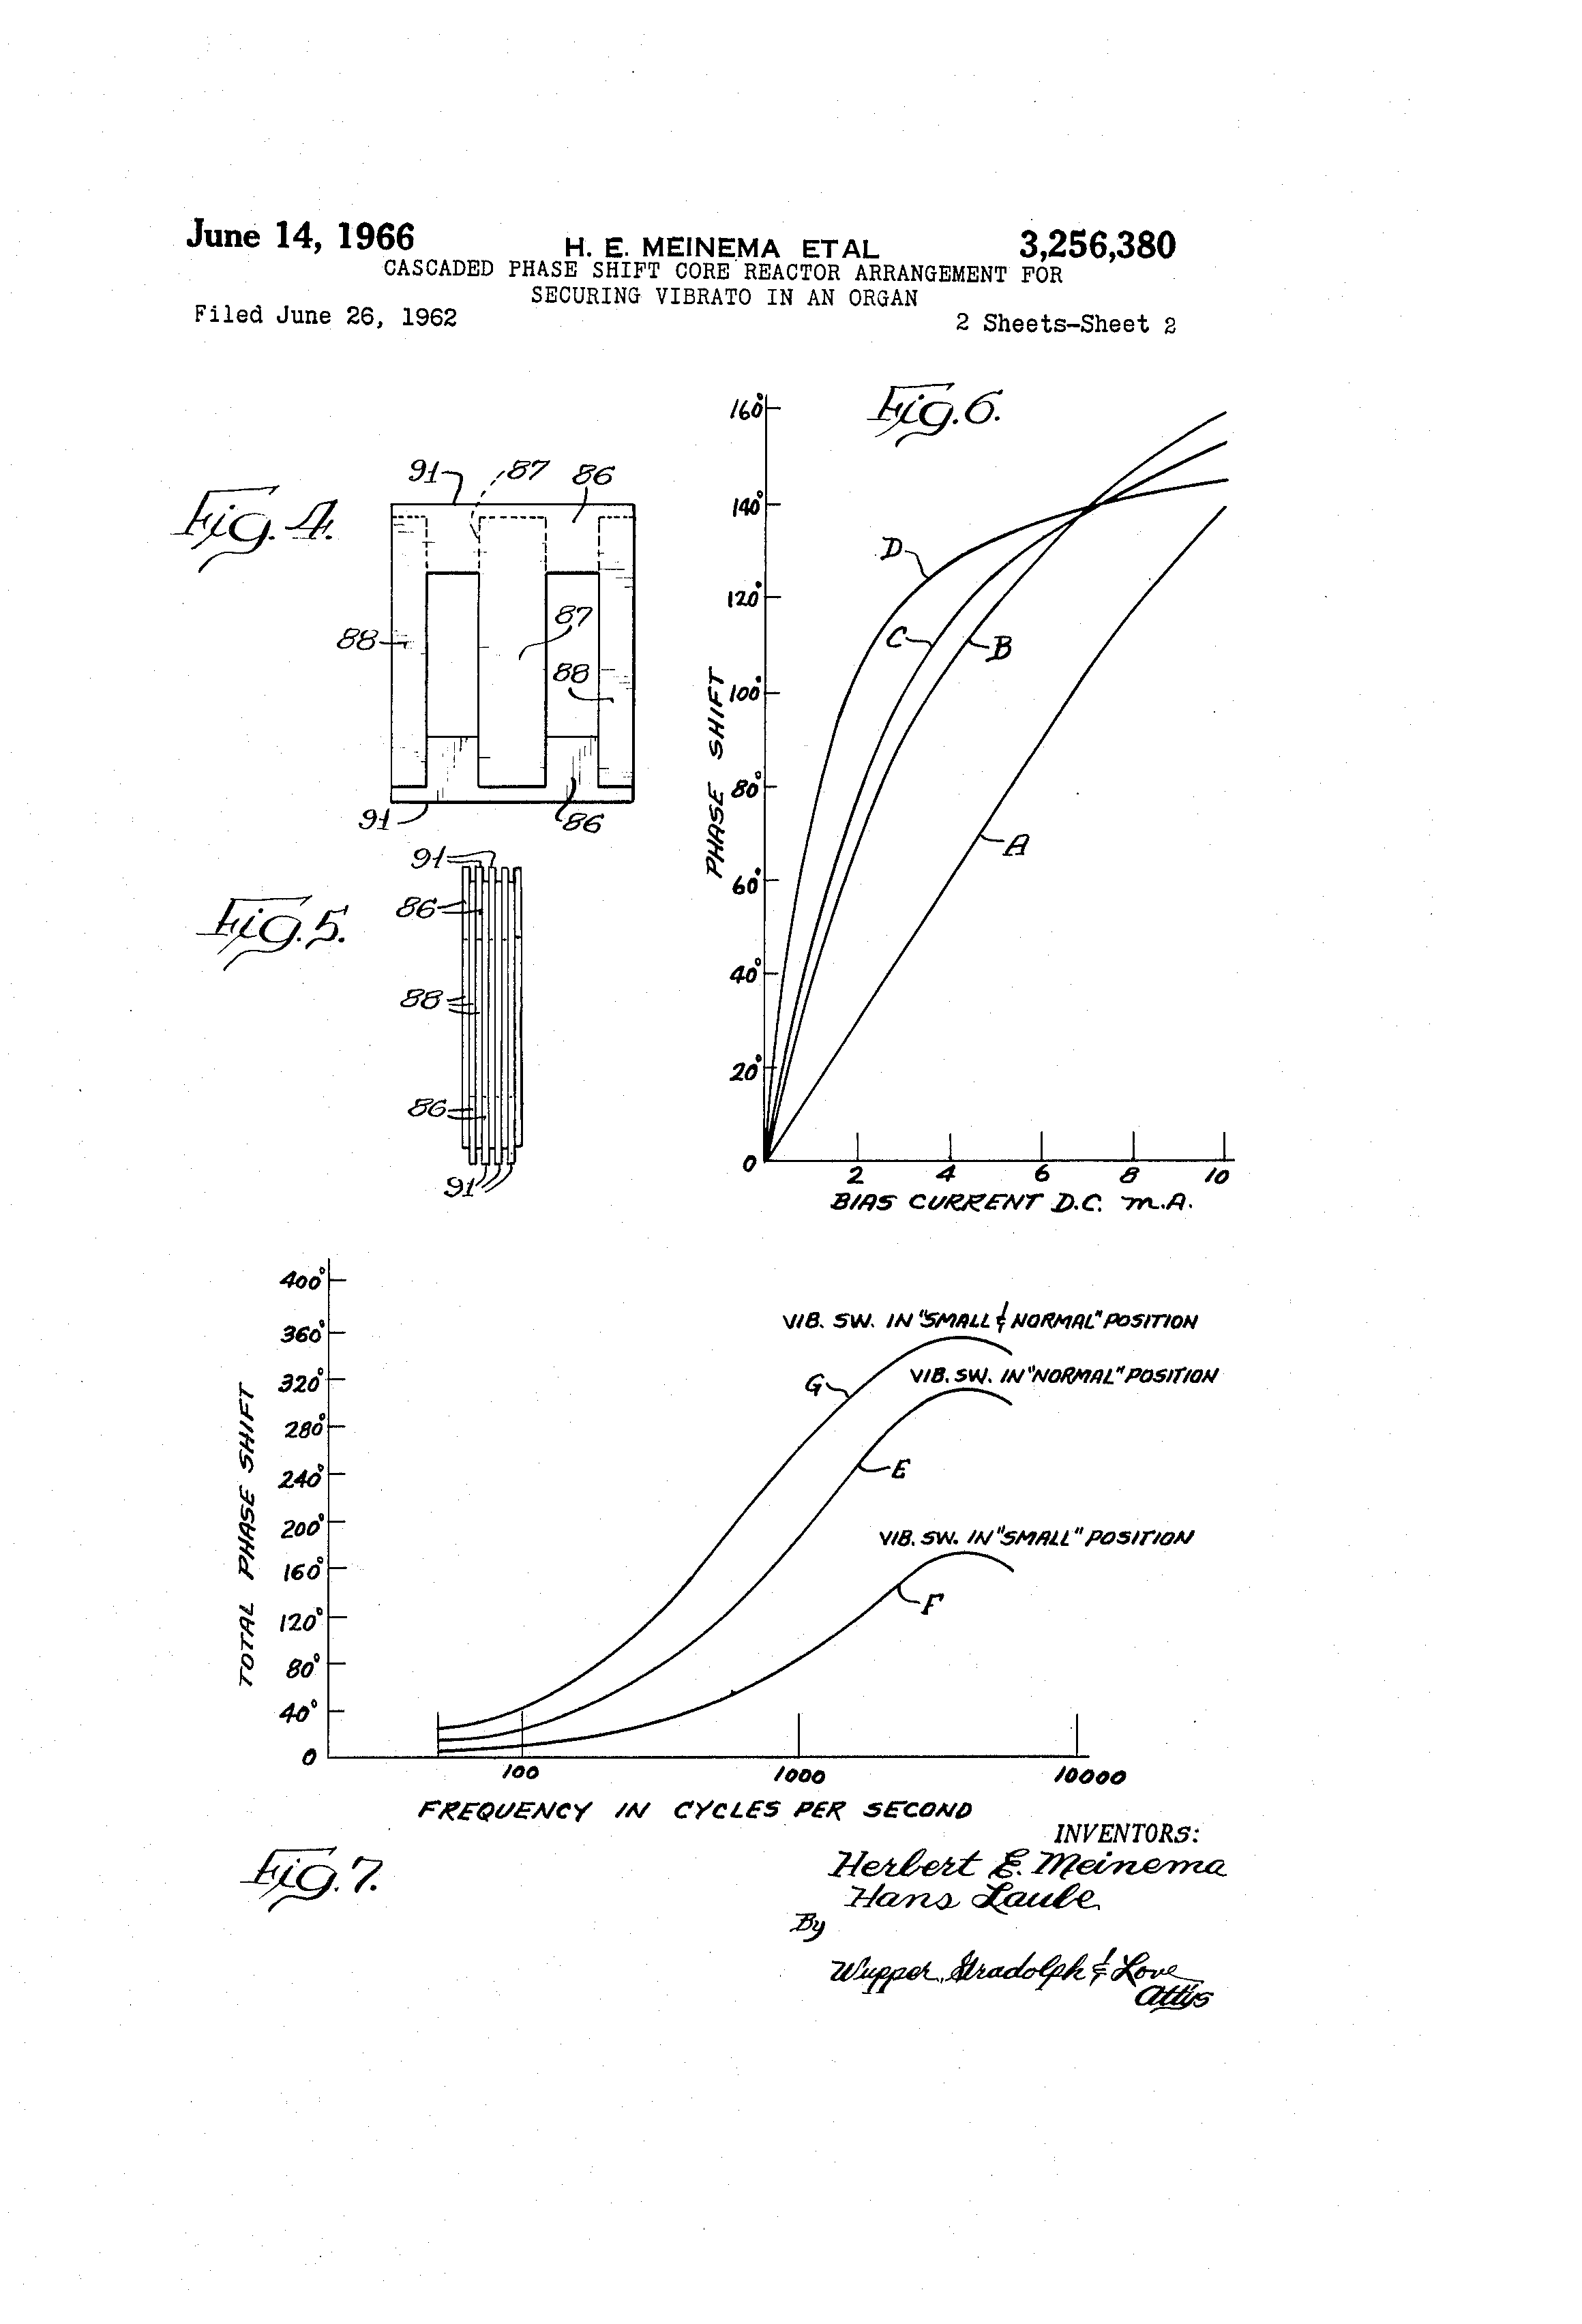 Brevet Us3256380 Cascaded Phase Shift Core Reactor Arrangement For Schematics How Do I Change The Frequency Of This Vibratocircuit Patent Drawing